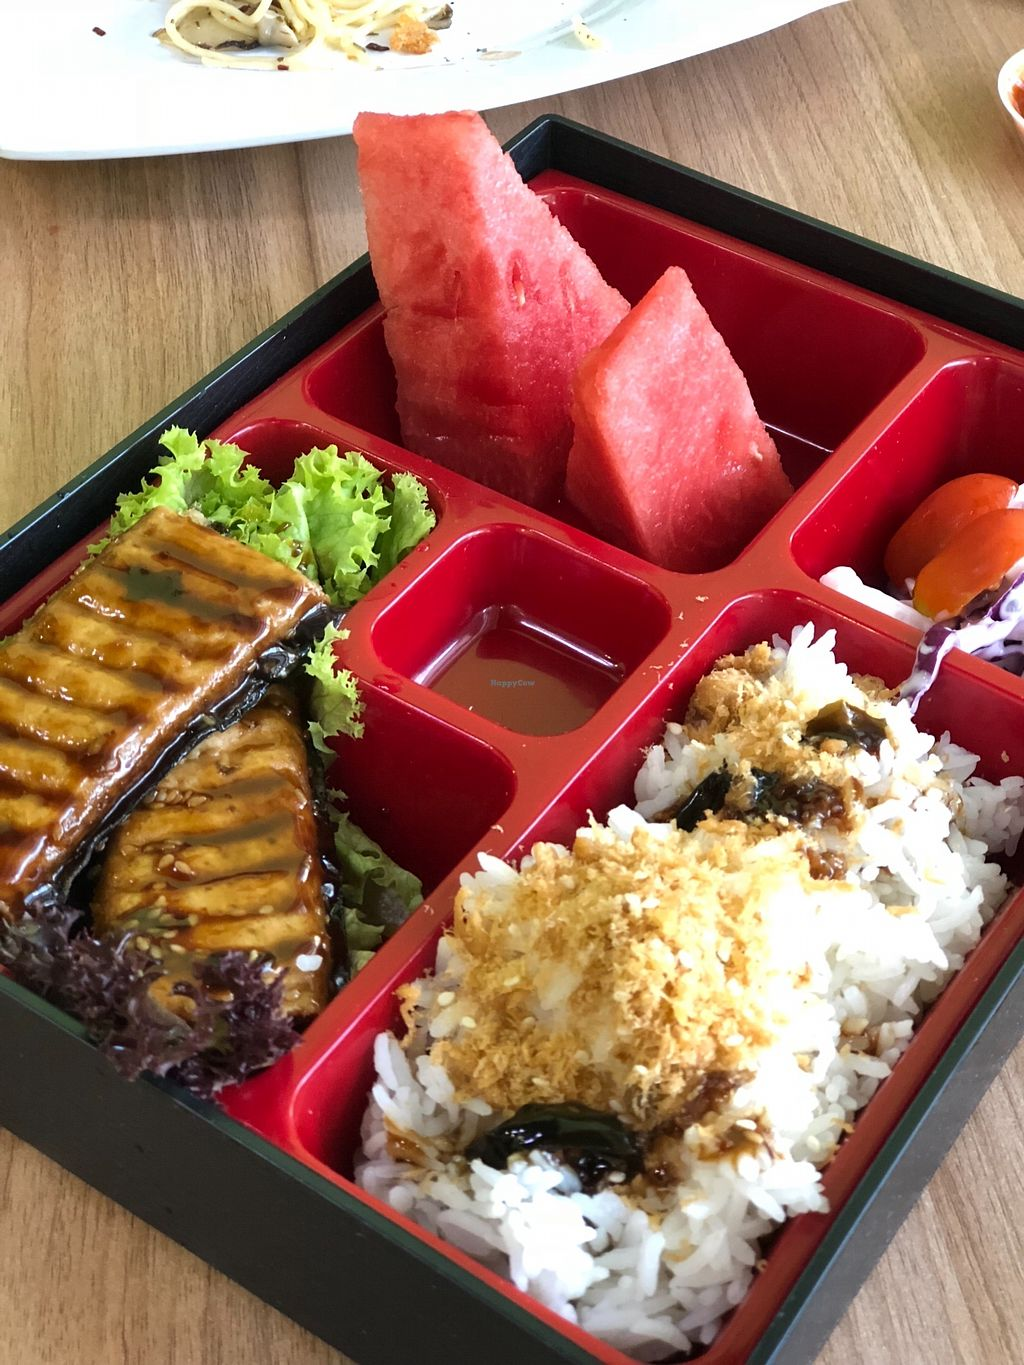 """Photo of Pine Green Vegan Cafe  by <a href=""""/members/profile/CTzhihui"""">CTzhihui</a> <br/>Teriyaki Unagi Rice <br/> April 17, 2018  - <a href='/contact/abuse/image/108370/387005'>Report</a>"""